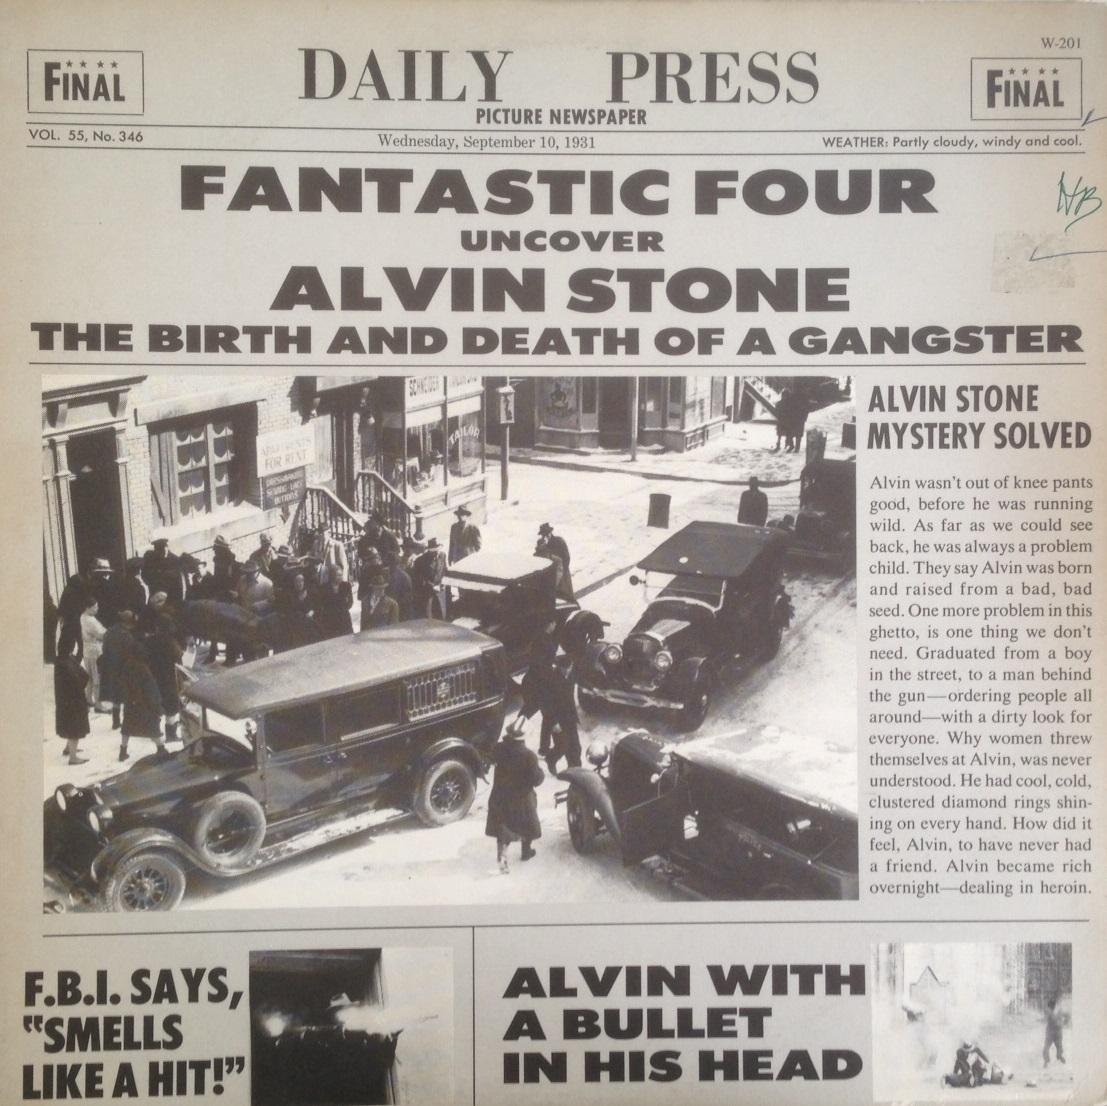 FANTASTIC FOUR / ALVIN STONE (BIRTH AND DEATH OF